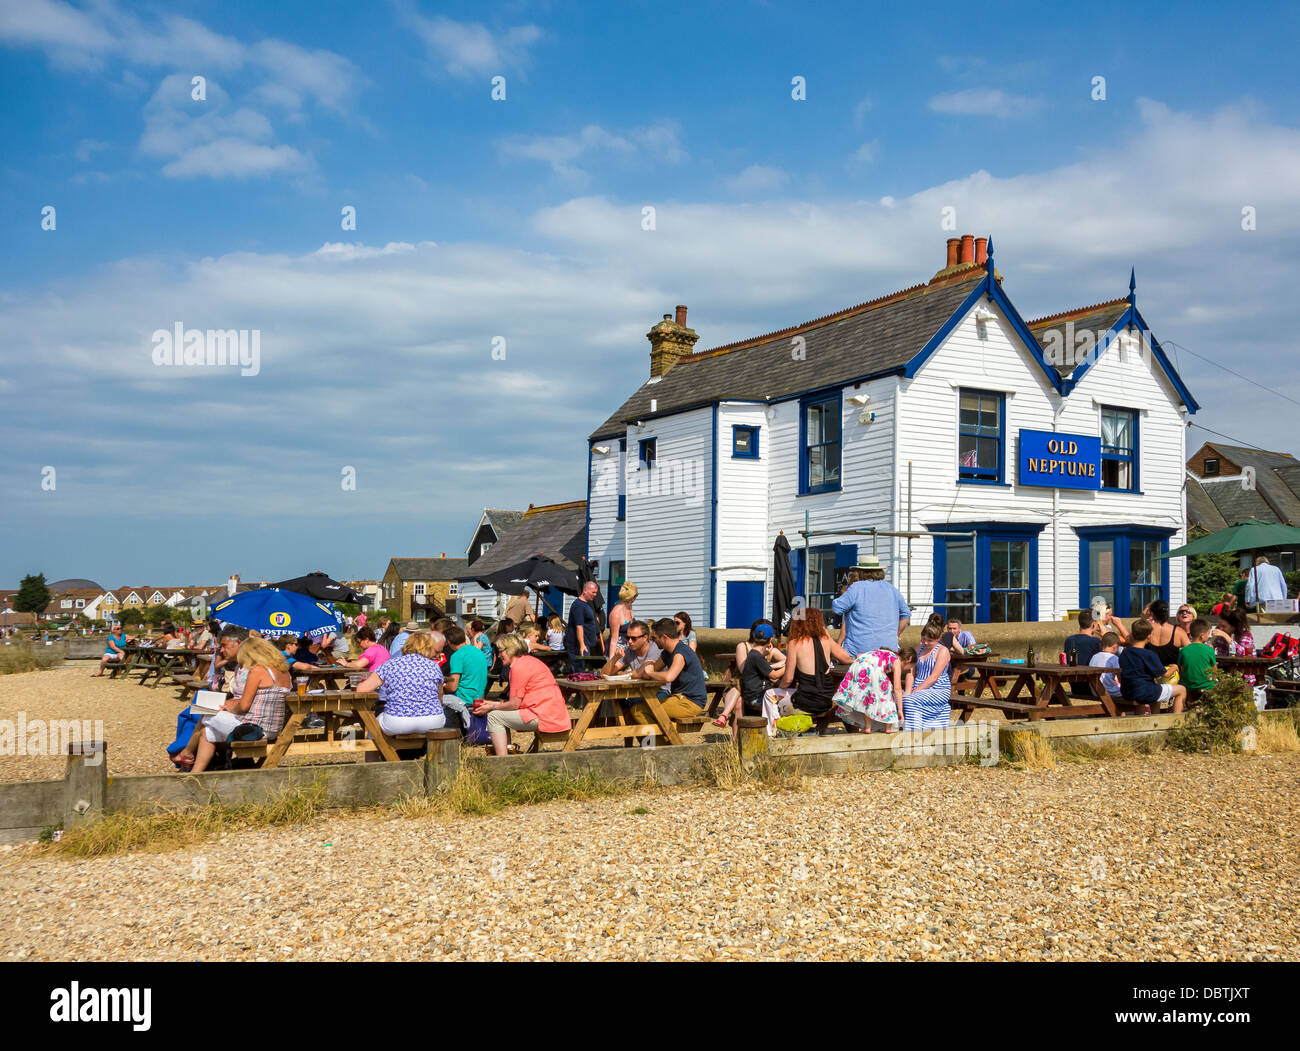 The Old Neptune Pub on the Beach Whitstable Kent - Stock Image